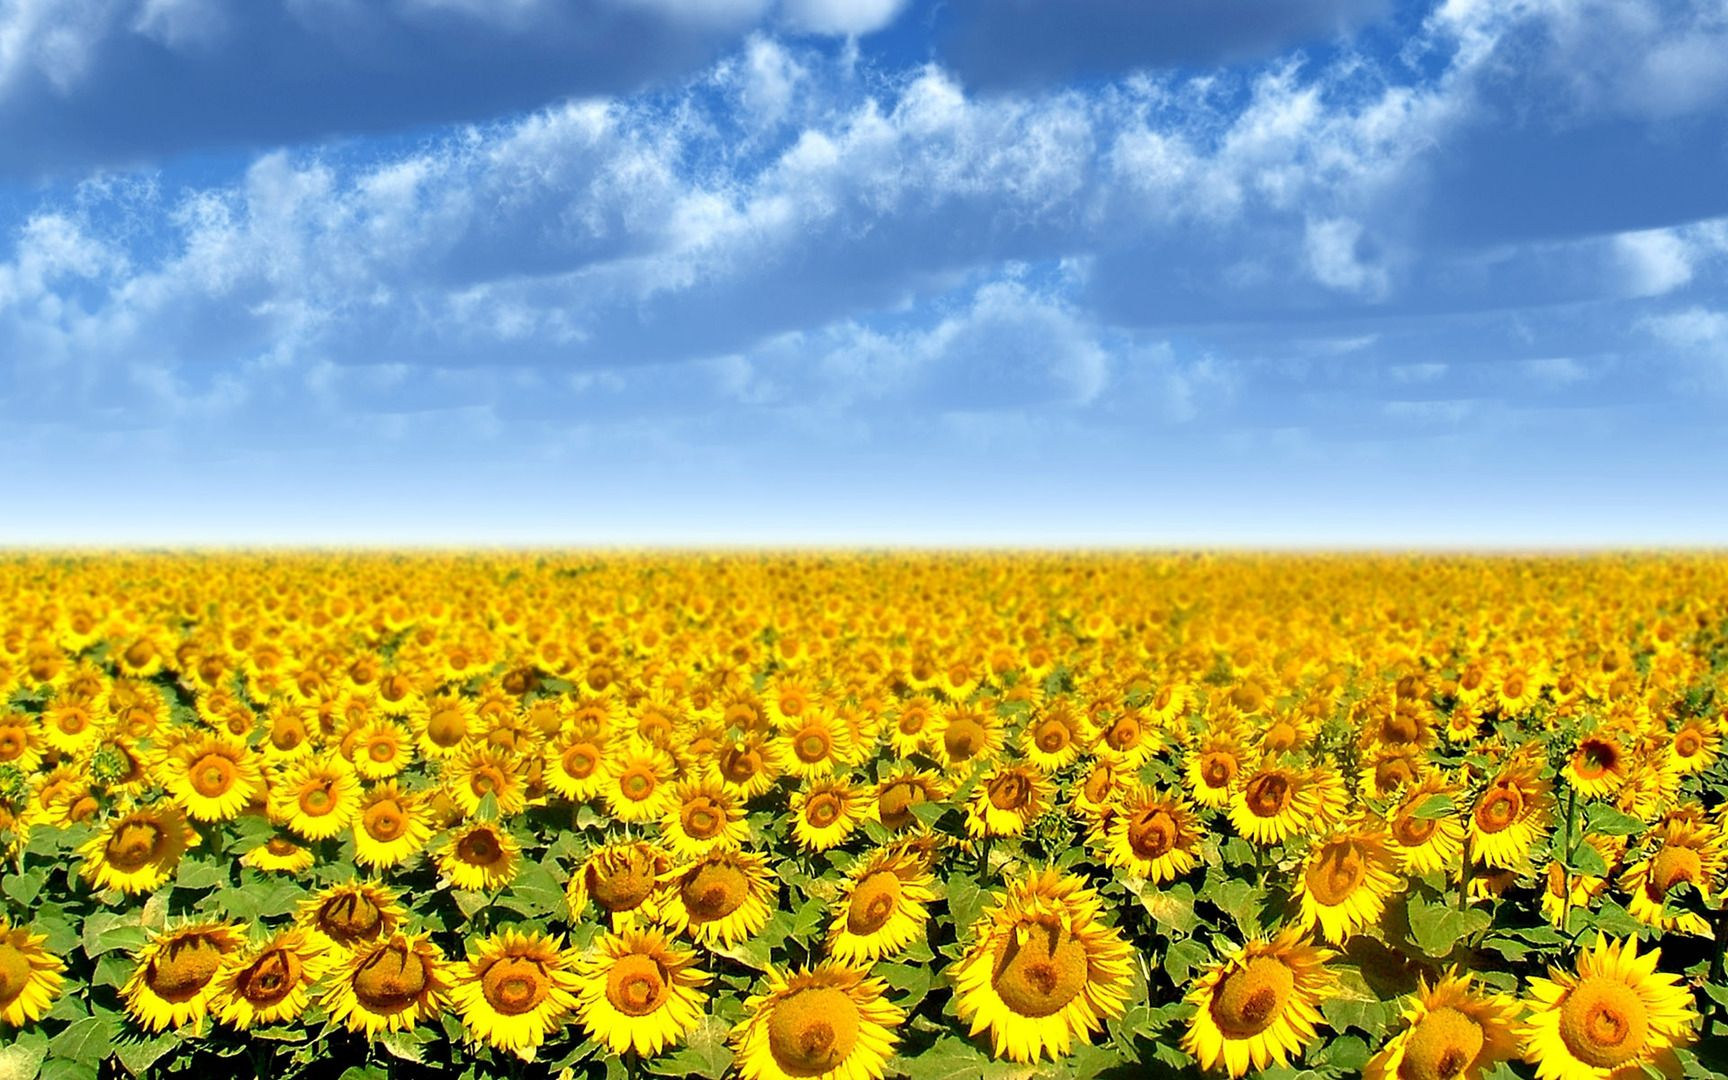 Sunflower Field Flowers 1080p HD Wallpaper For Desktop